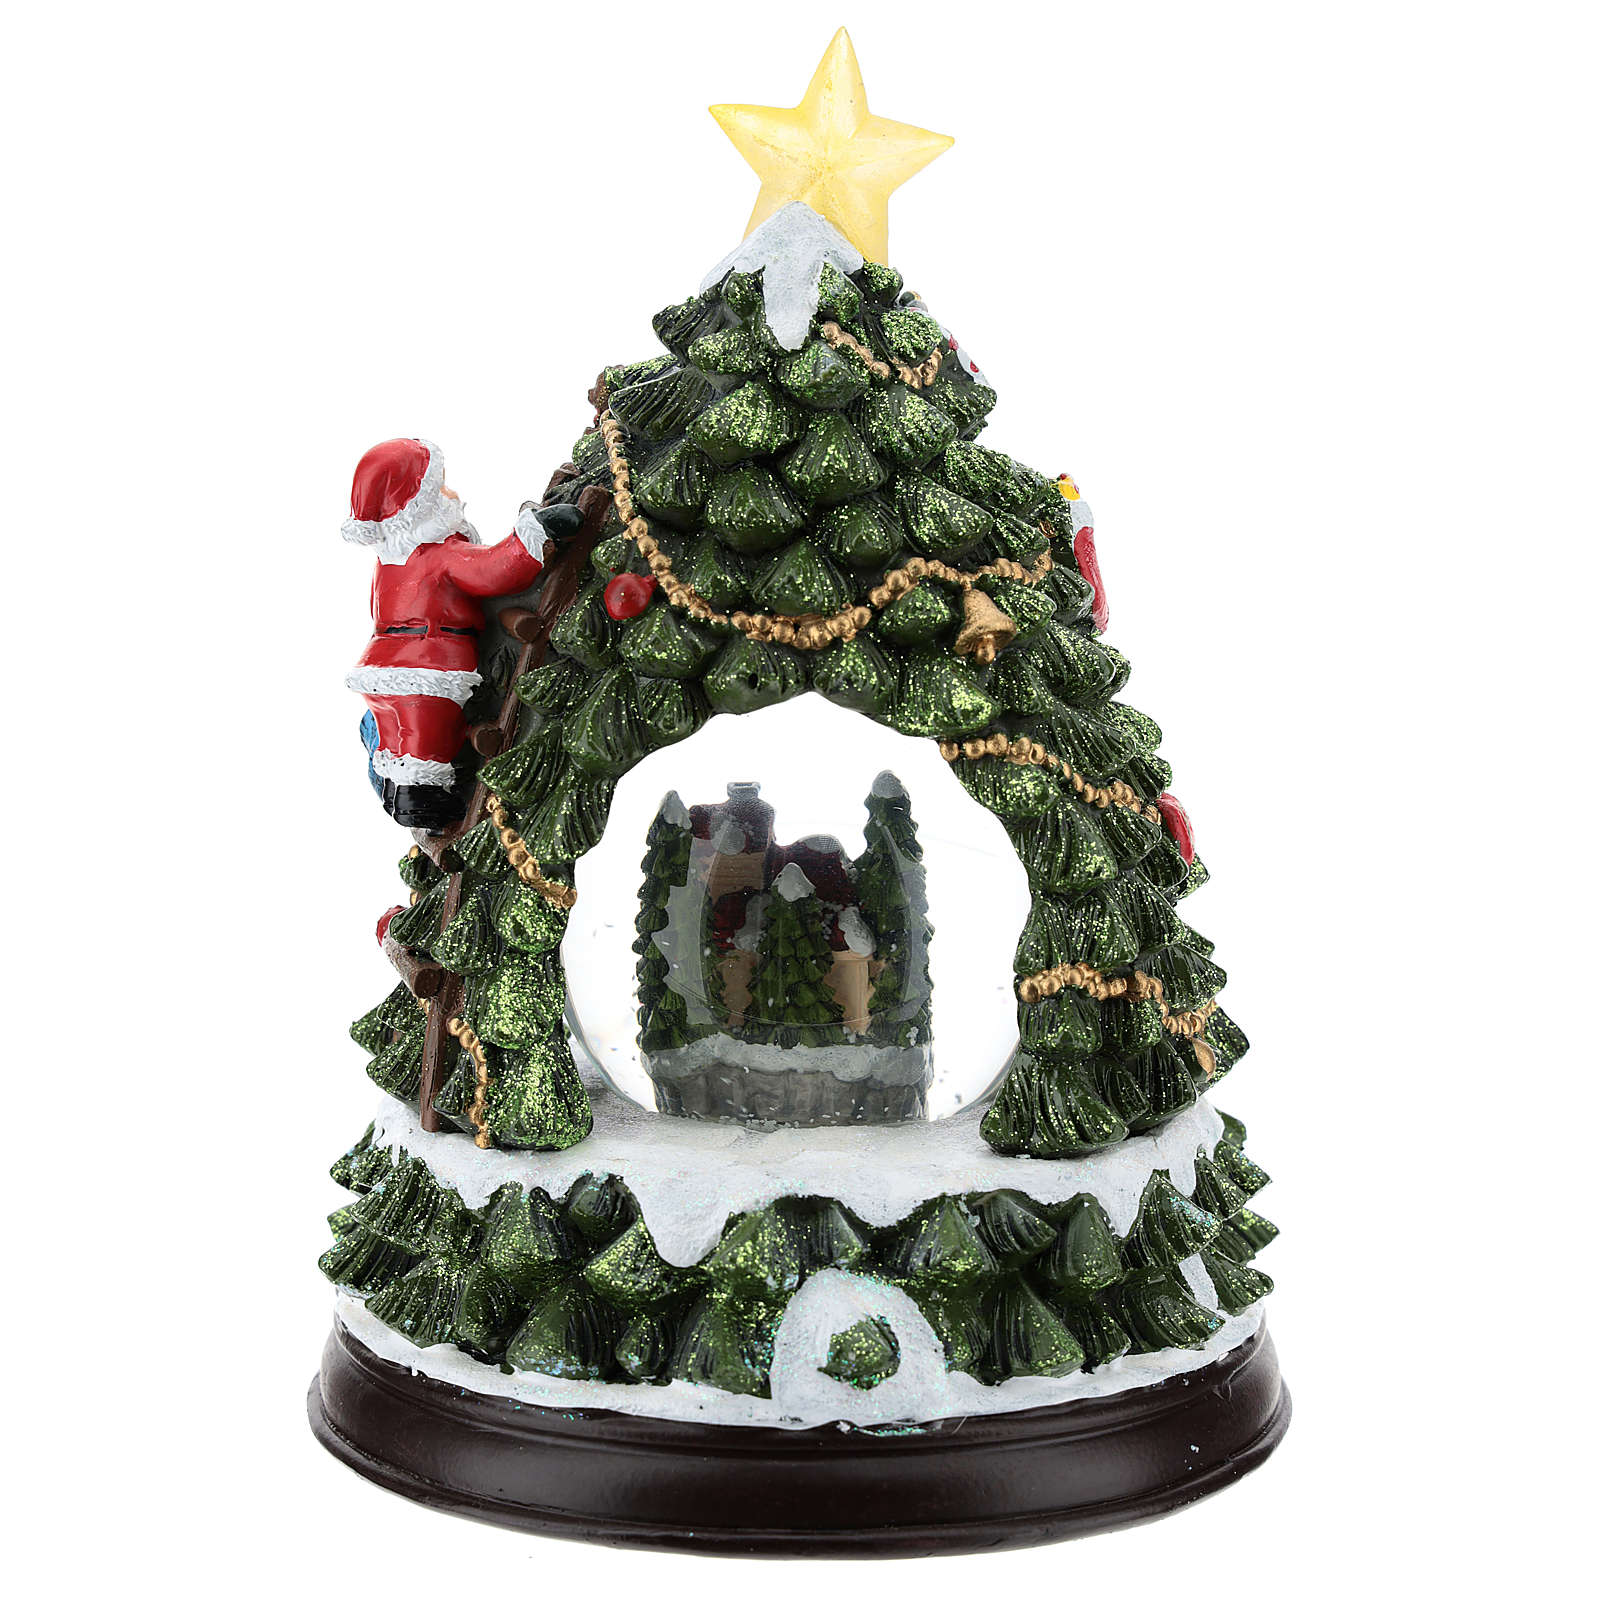 Christmas In Evergreen Snow Globe.Christmas Tree Statue With Snow Globe H 25 Cm